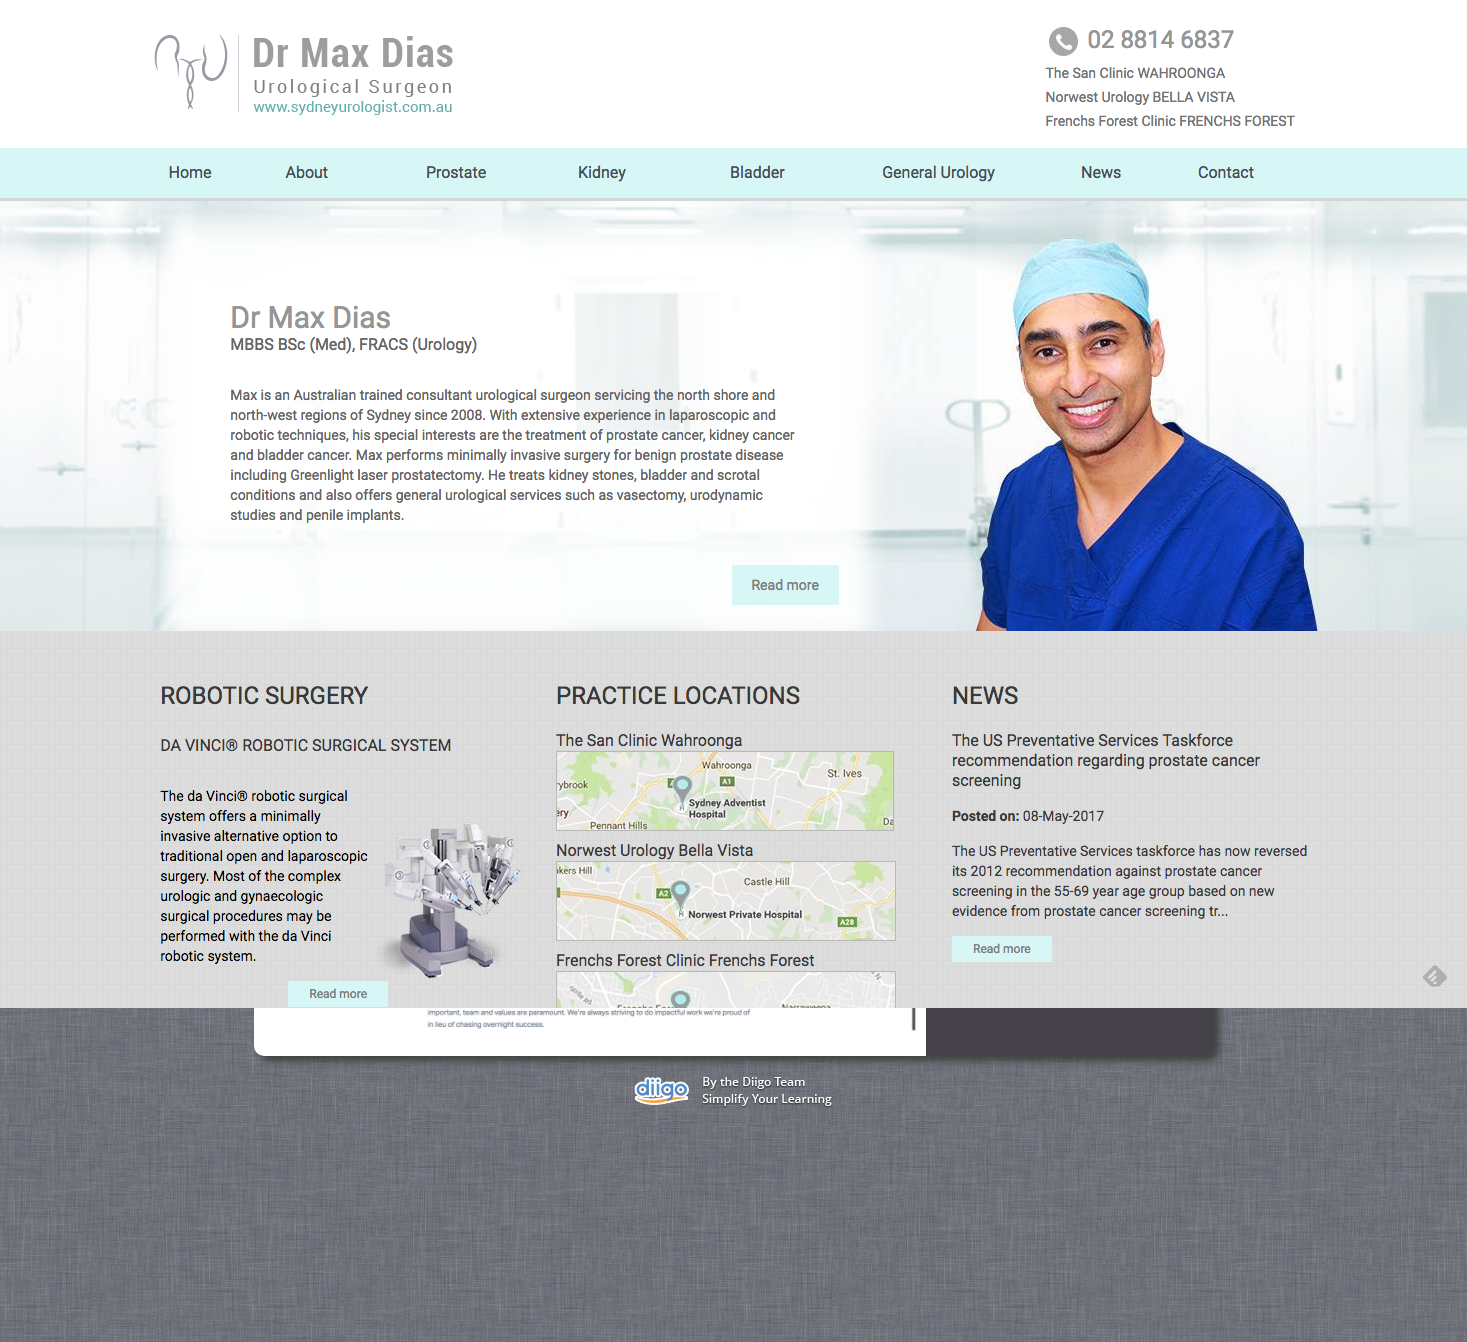 Medical Website for Urology Surgeons